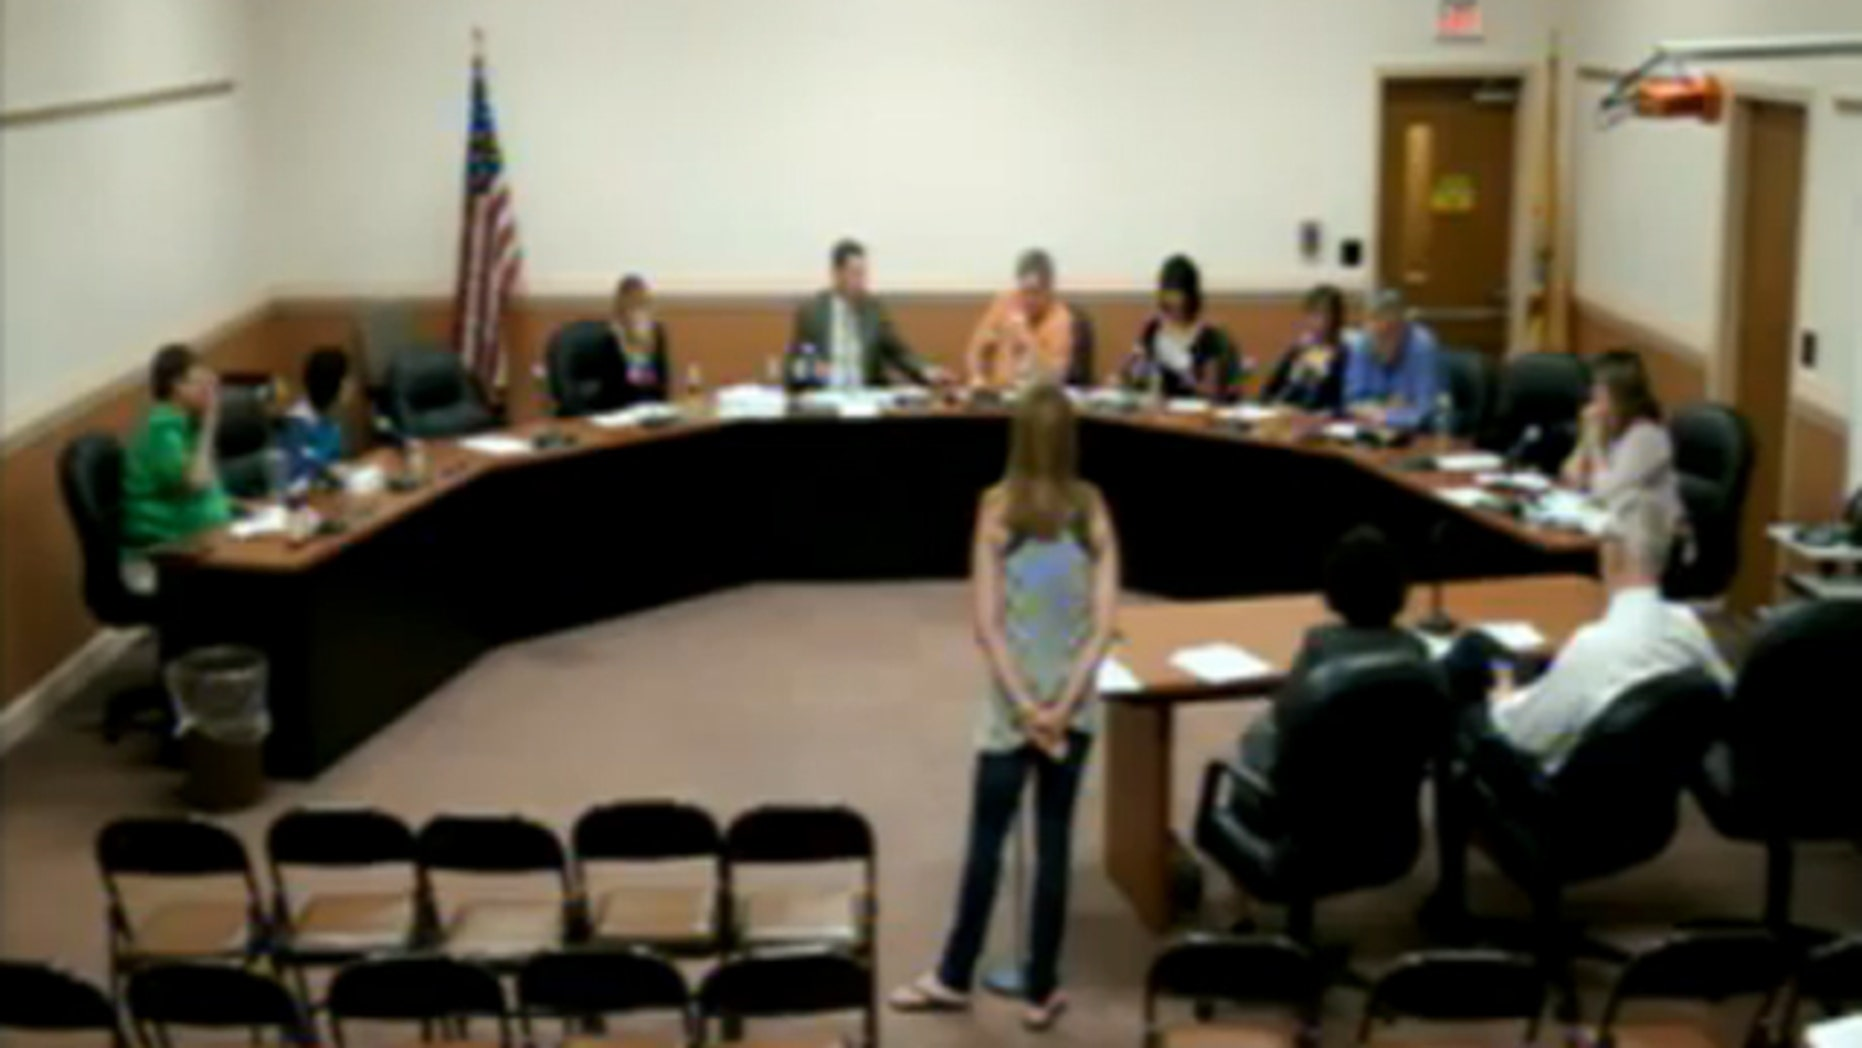 """Valerie Kaufman, center, told the Marlboro Township Board of Education during a June 12 meeting that she found the pledge to be unconstitutional and suggested administrators """"do away"""" with the practice. (Marlboro Township Public Schools)"""